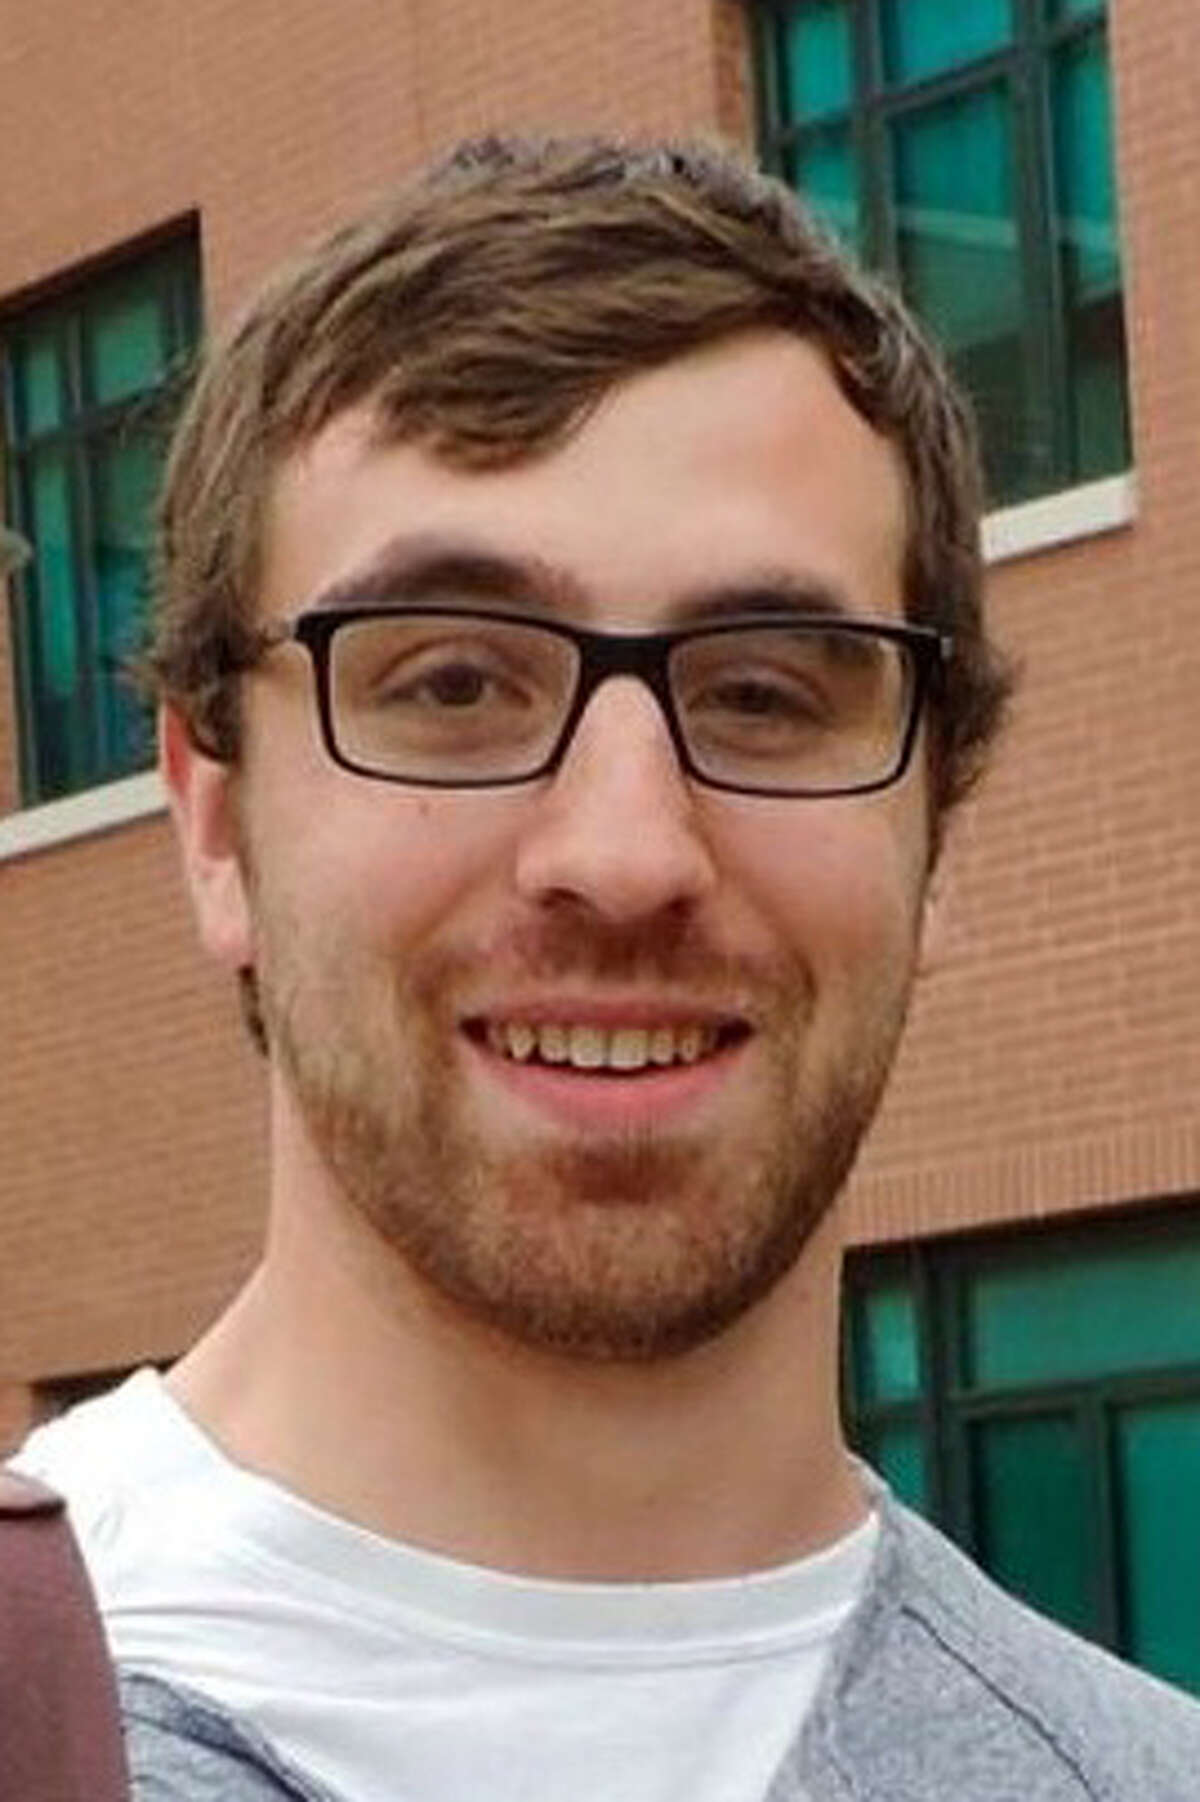 Funeral services were held for a 27-year-old Staples High School teacher and newspaper adviser at the end of January. Many students and staff honored Cody Thomas, who was also a poet and musician, with tributes. His death was ruled a suicide by medical examiners. Read more.